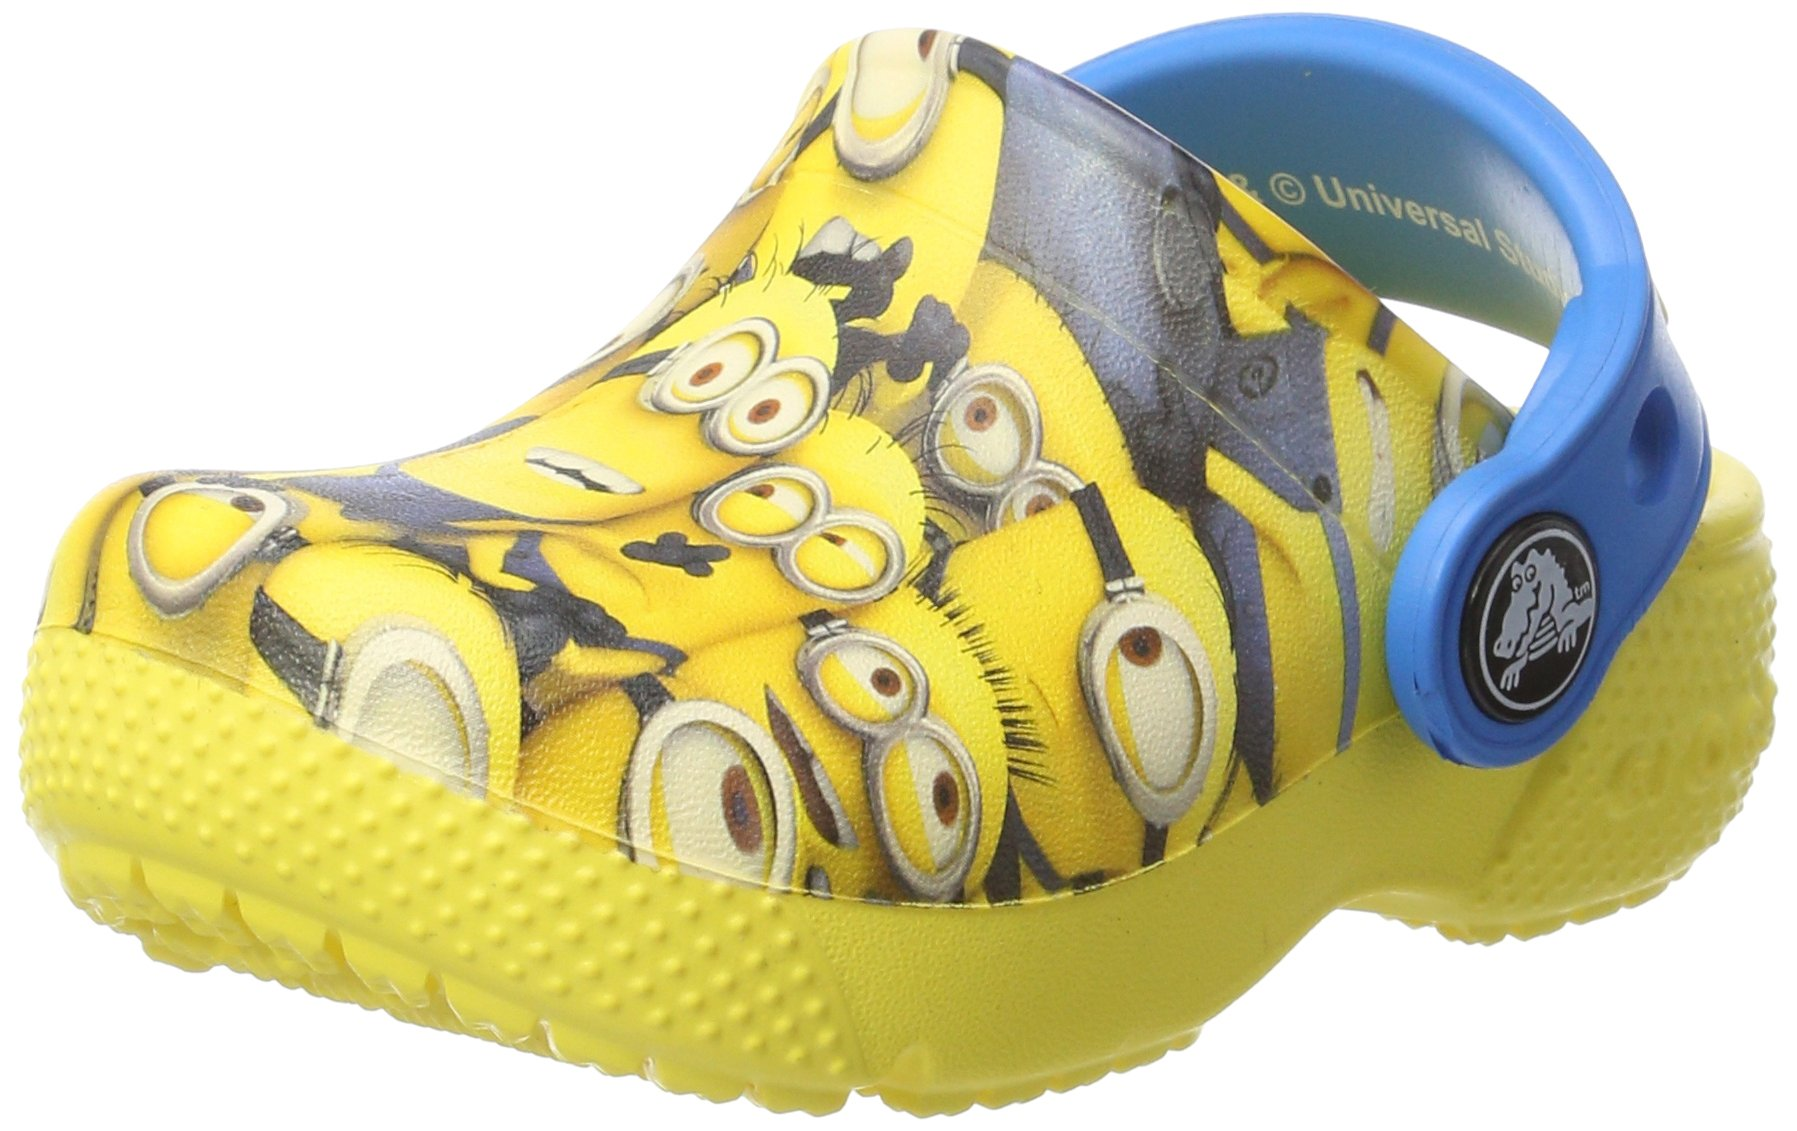 Crocs Crocksfunlab Minions Graphic Sunshine Ankle-High Clogs - 6M